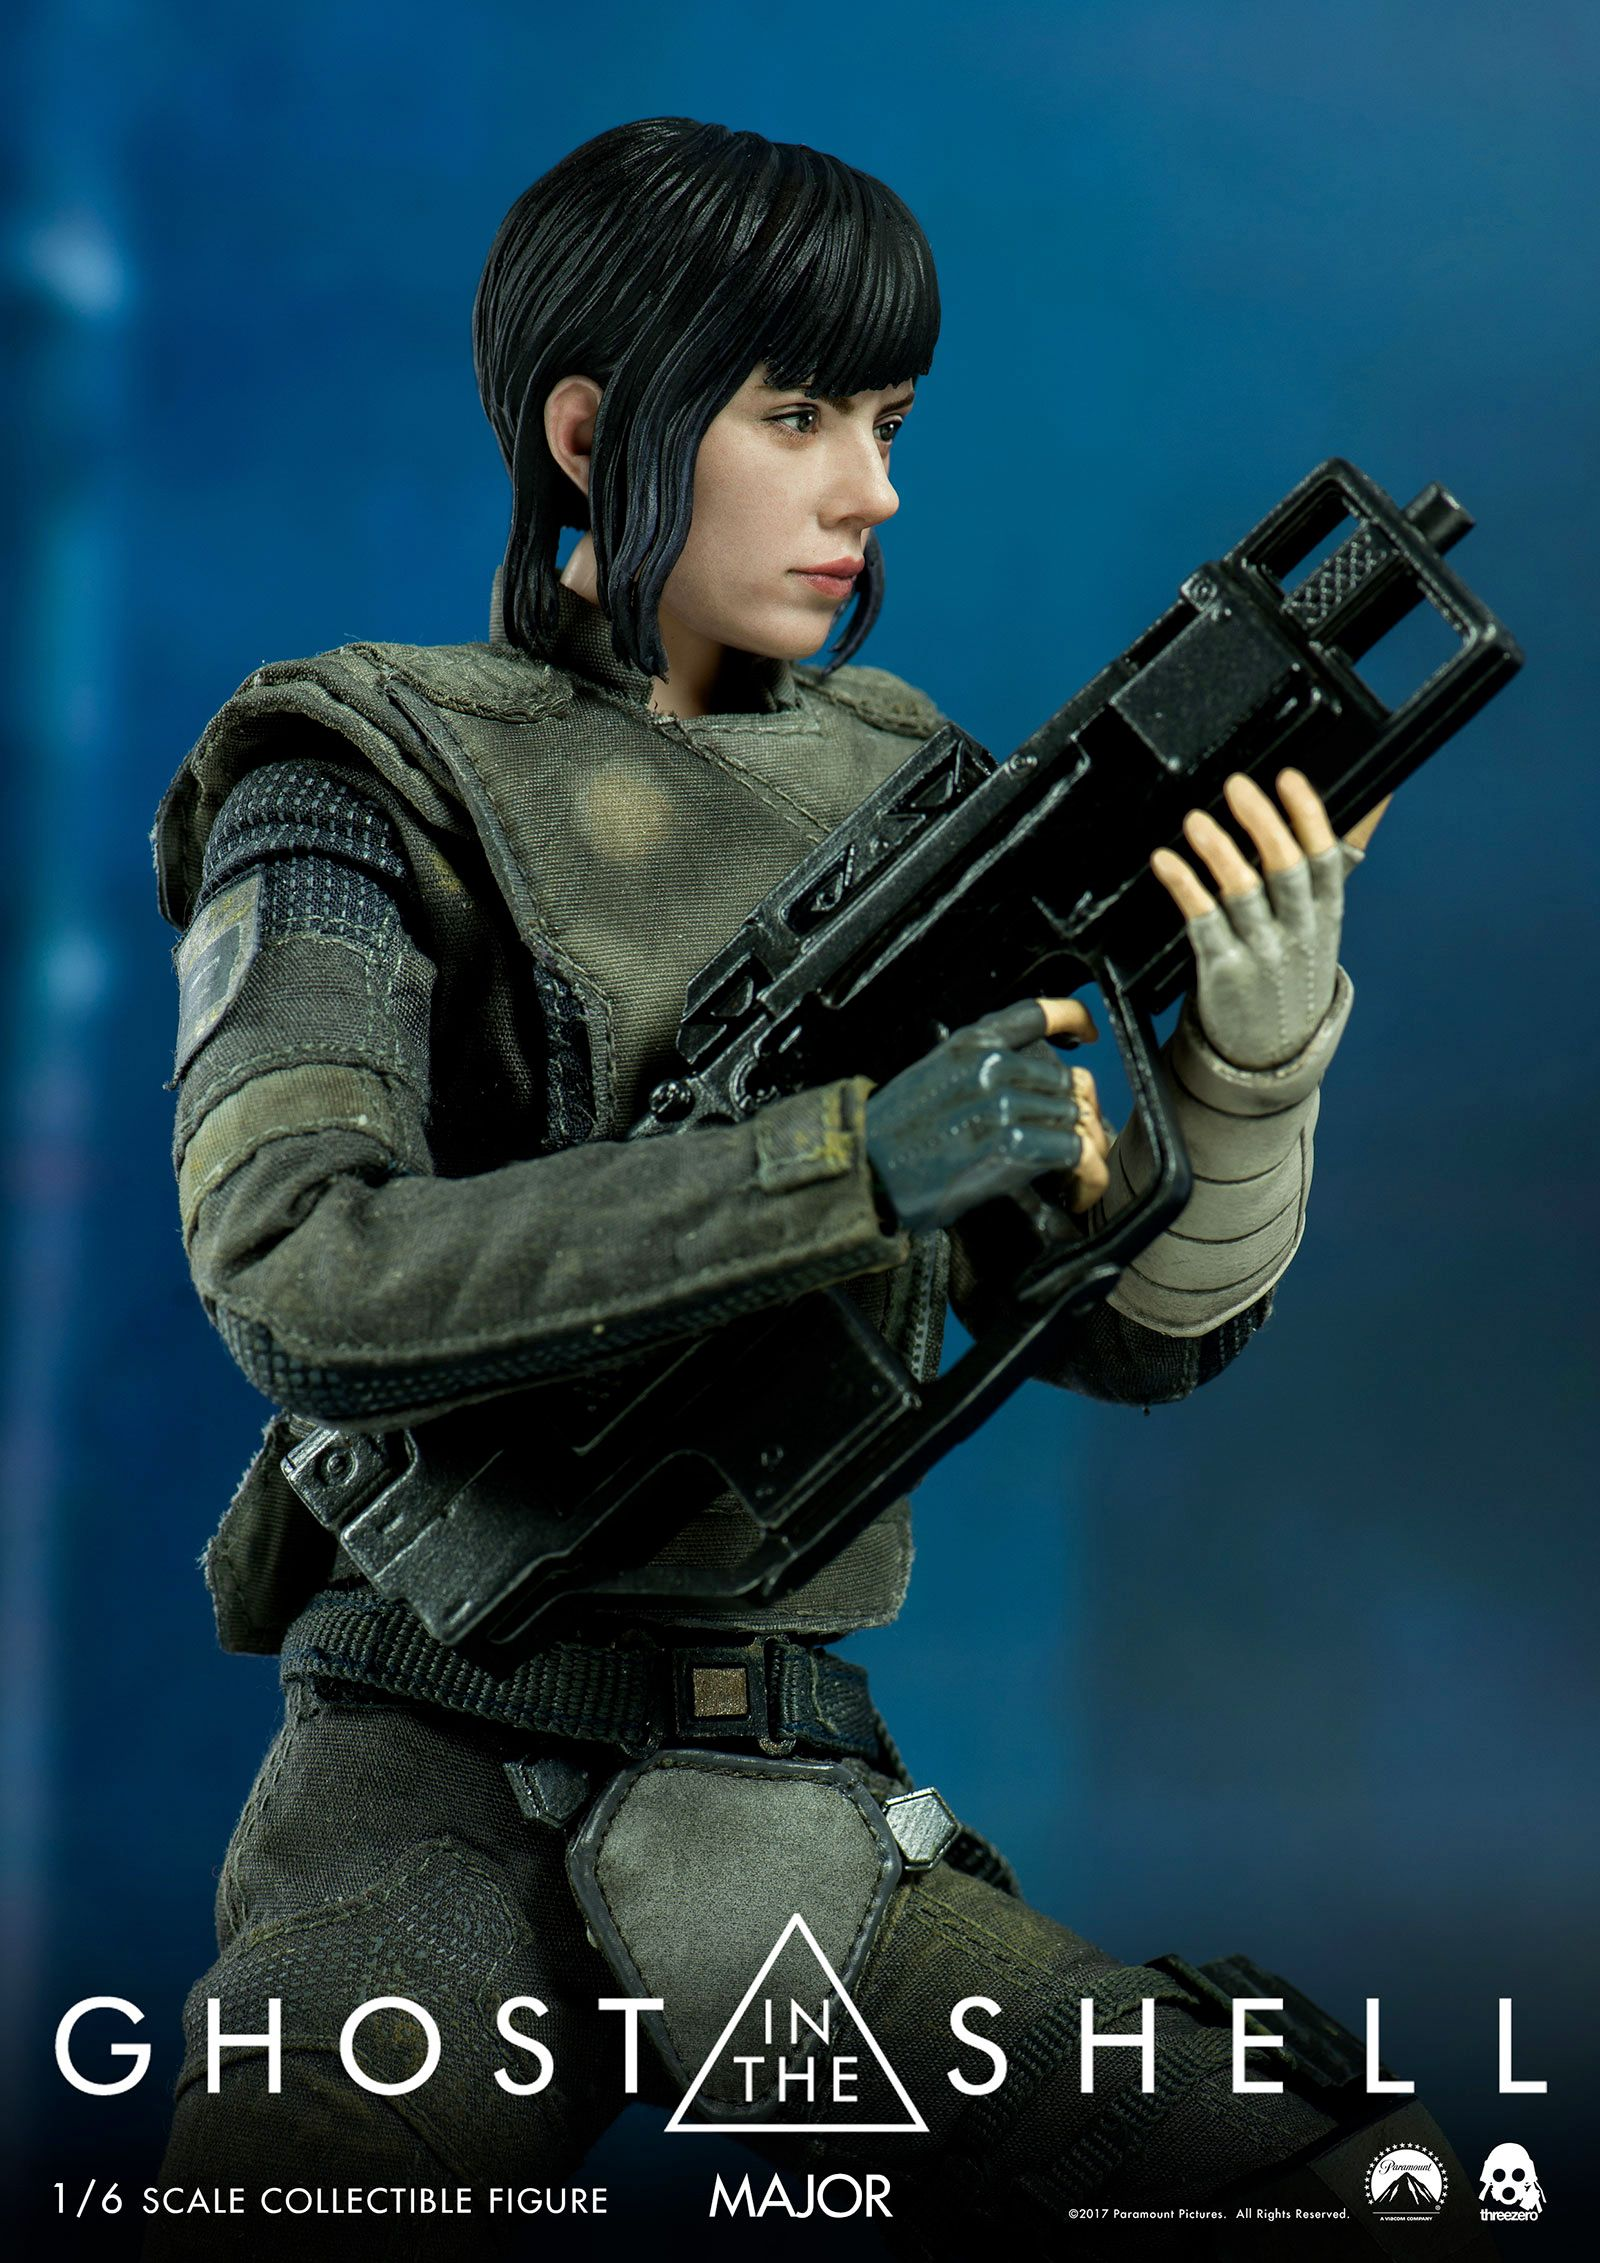 Ghost-In-The-Shell-MAJOR-Collectible-Action-Figure-05